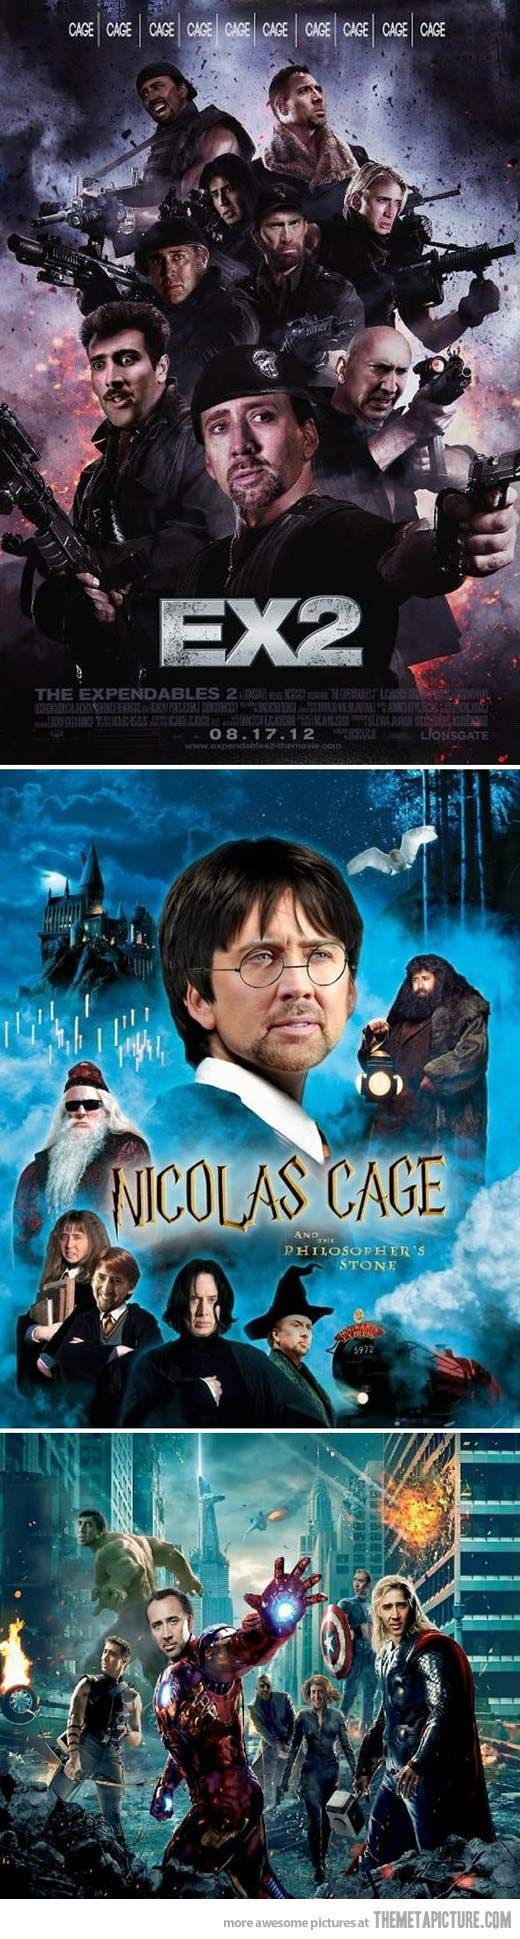 Nic Cage is in everything these days